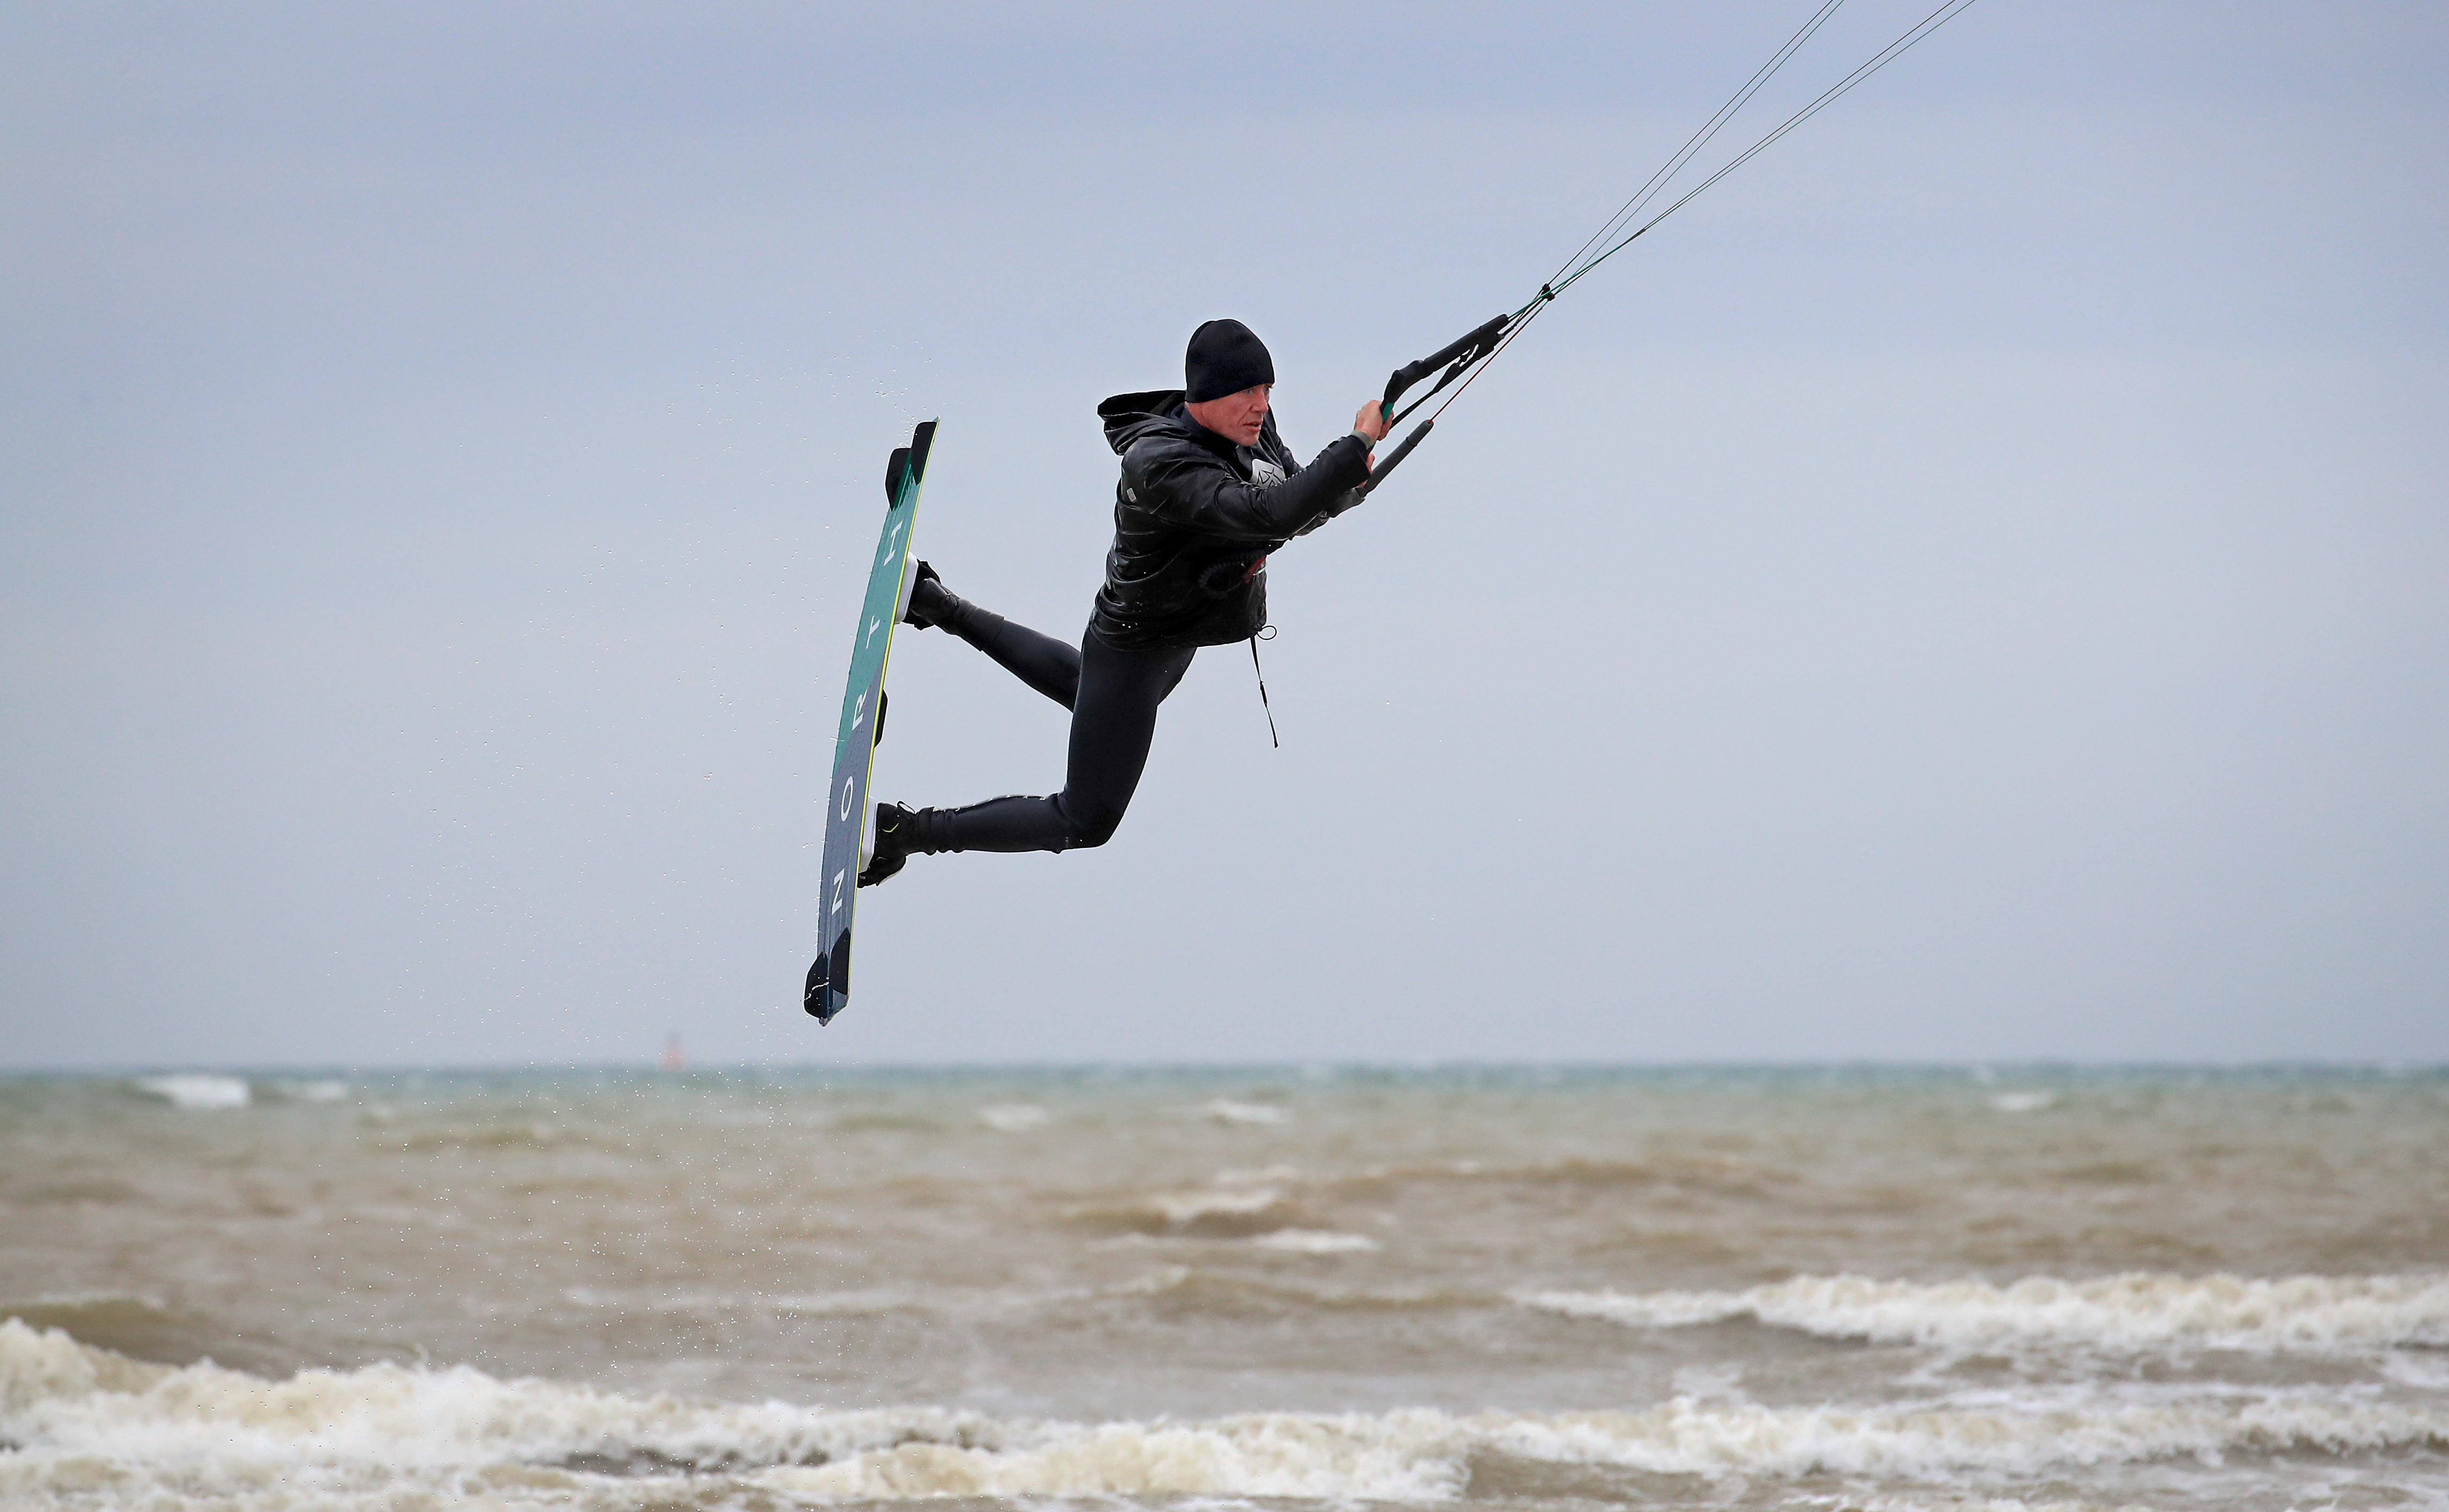 <p>A kitesurfer enjoys the strengthening winds in Camber, East Sussex. Picture date: Thursday May 20, 2021.</p>